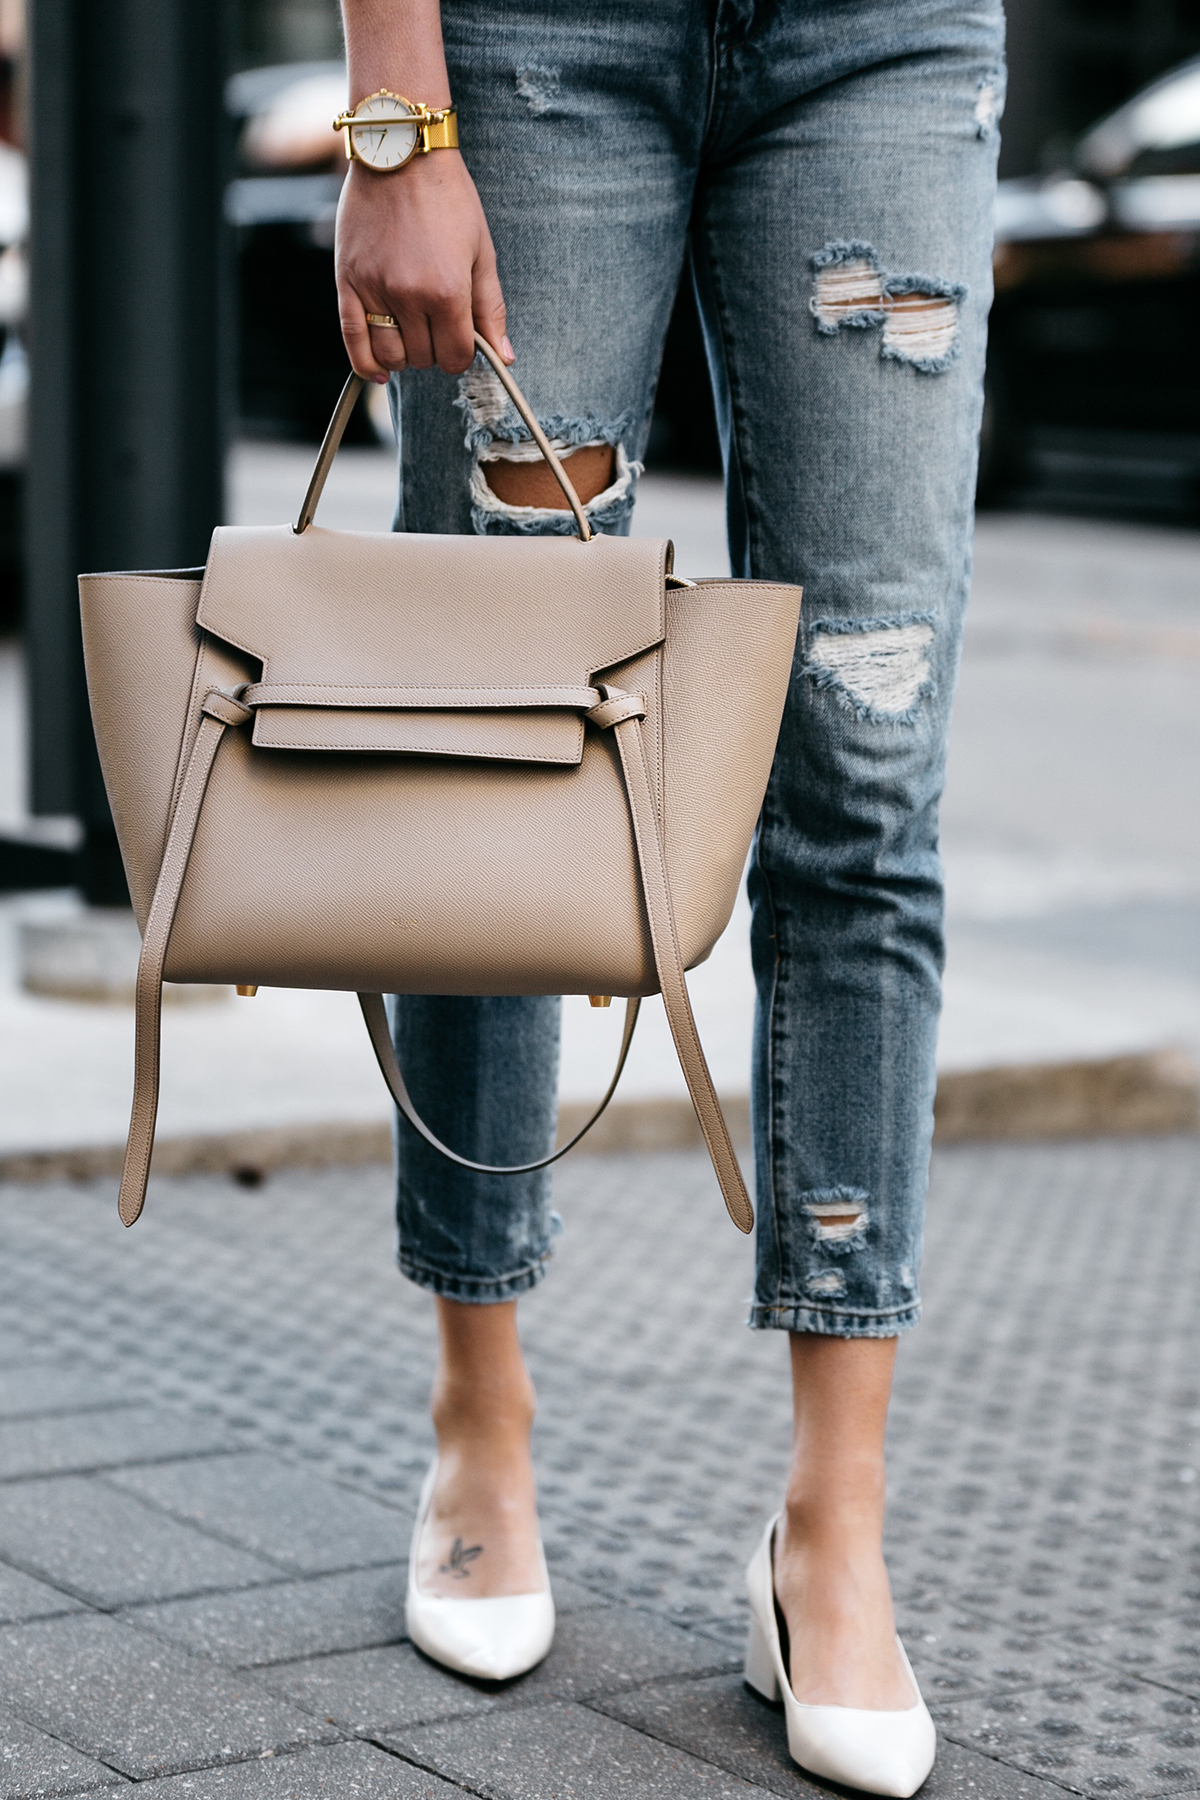 Fashion Jackson, Dallas, Blogger, Fashion Blogger, Street Style, Celine Belt Bag, Zara White Block Heels, Blanknyc Denim Ripped Mom Jeans